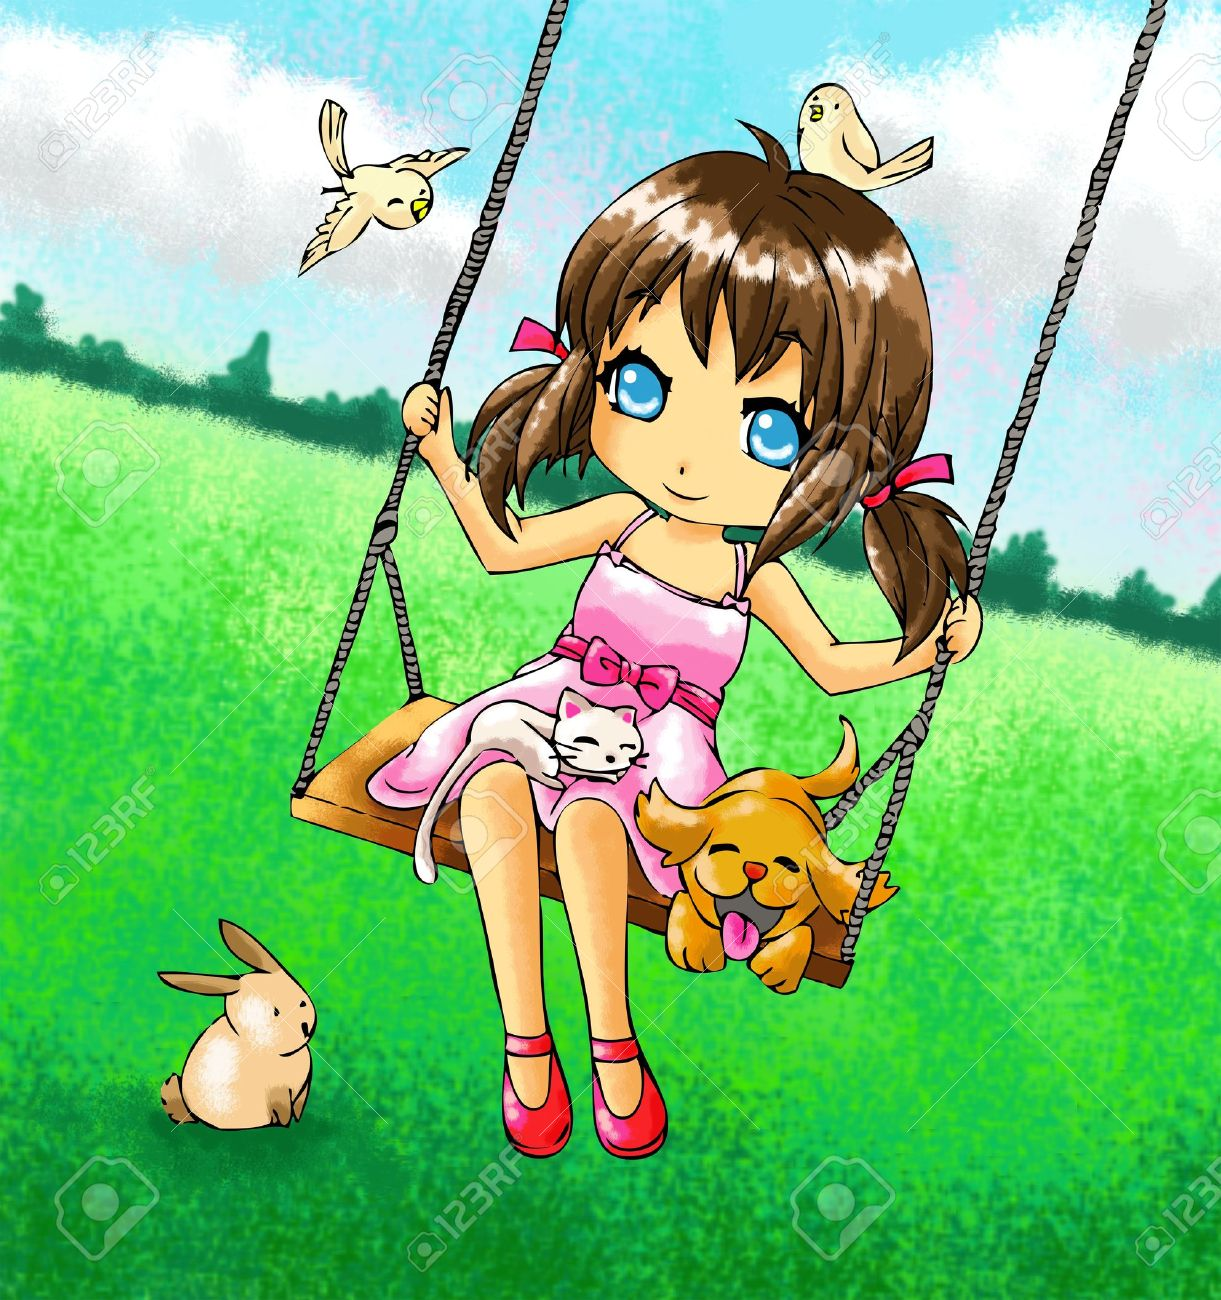 Cute 2d girl on the swing with her dog and other animals Stock Photo - 12707137